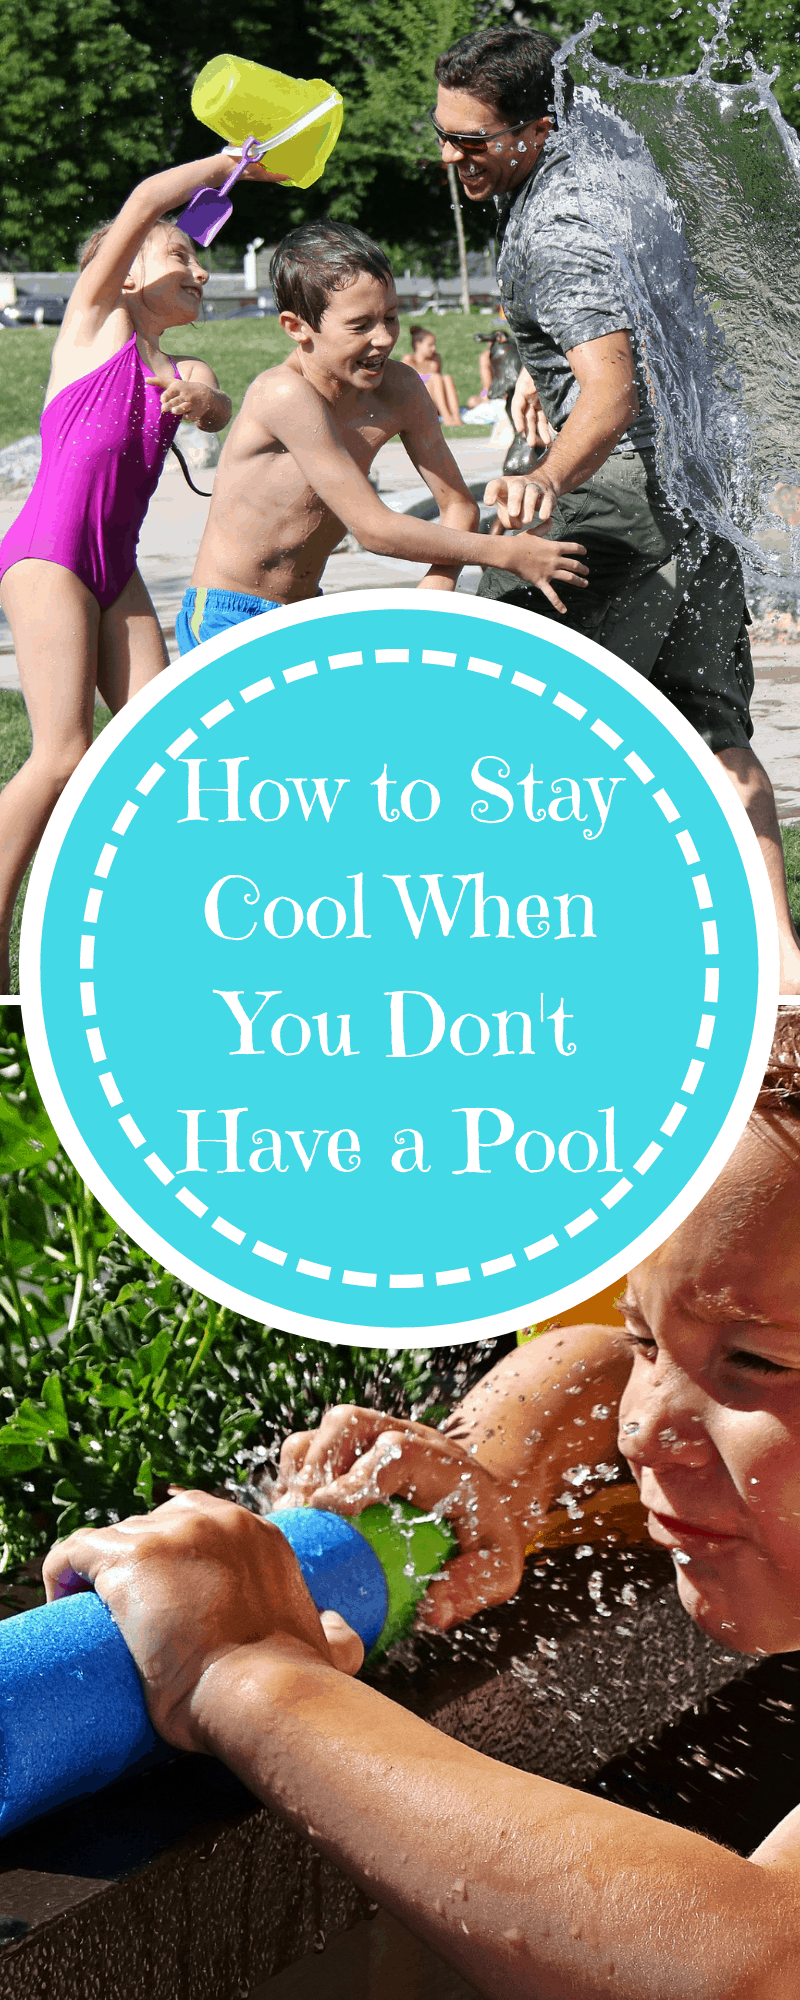 How to Stay Cool When You Don't Have a Pool